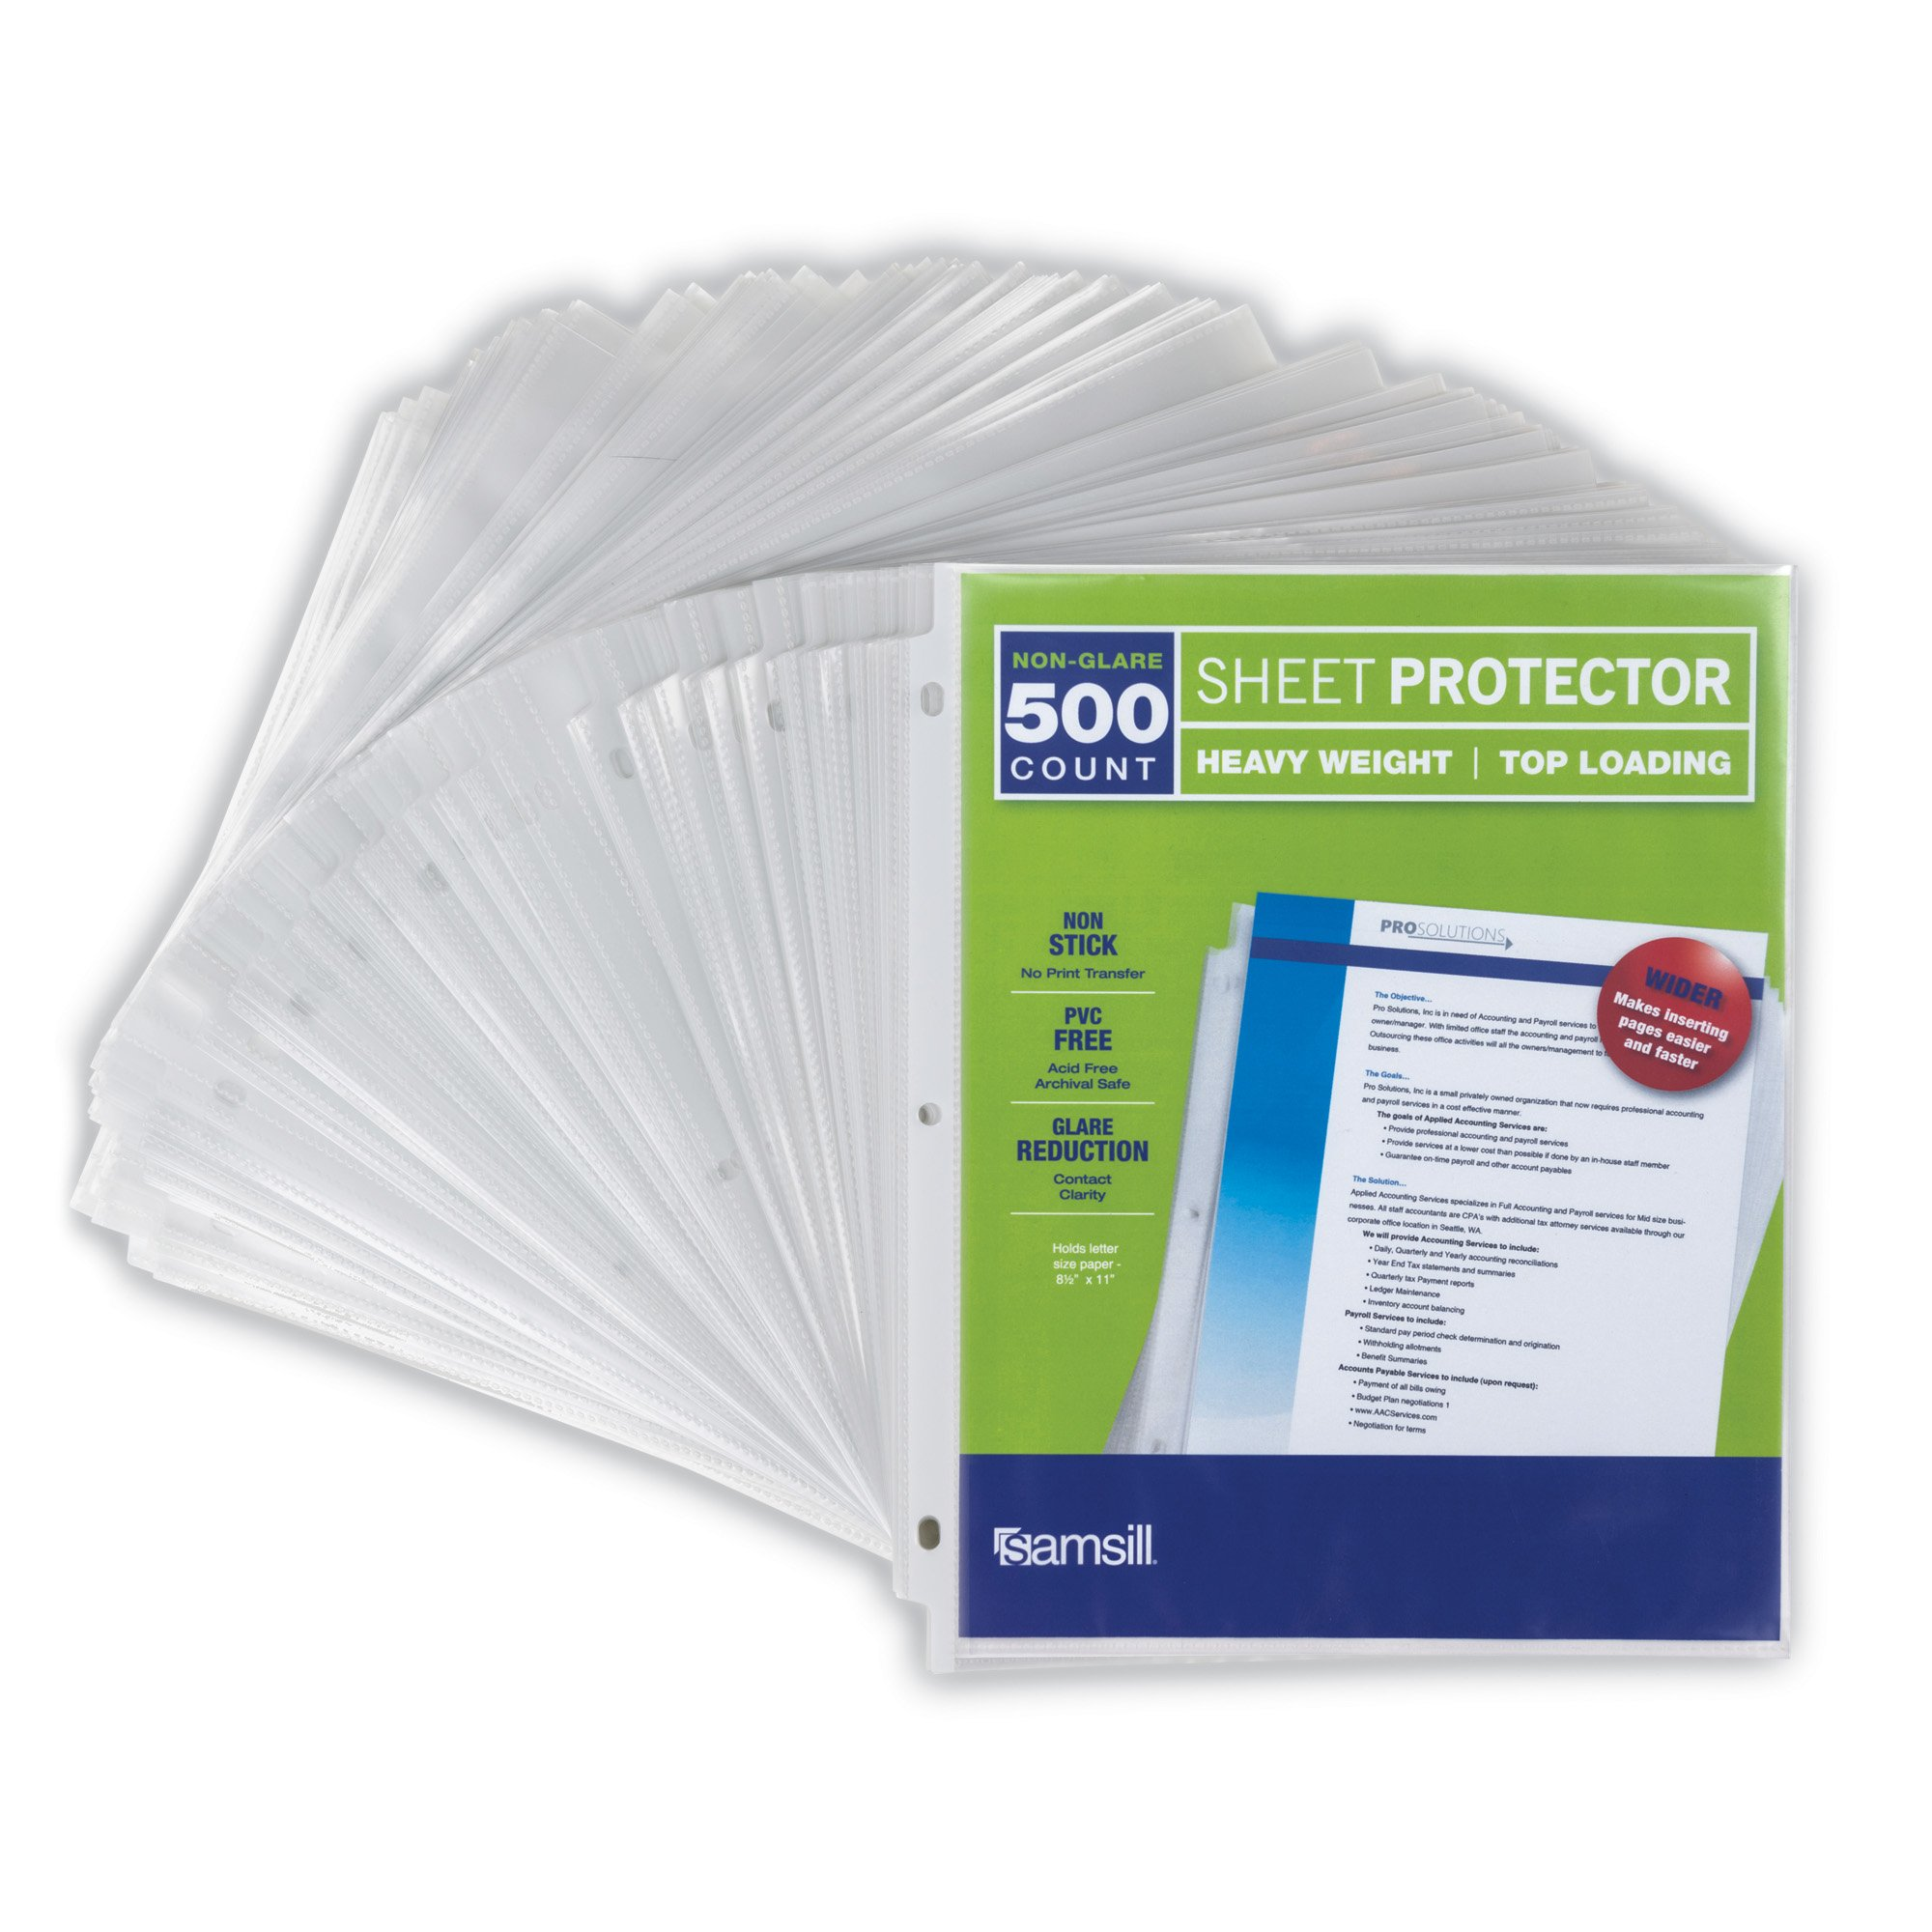 """Samsill Non-Glare Heavyweight 3.3 MIL Thickness, Top Loading Reinforced 3 Hole Punched Sheet Protectors, Archival Safe Won't Harm Photos or Printed Copy, for 8.5 x 11"""" Documents, Box of 500, Acid Free by Samsill"""